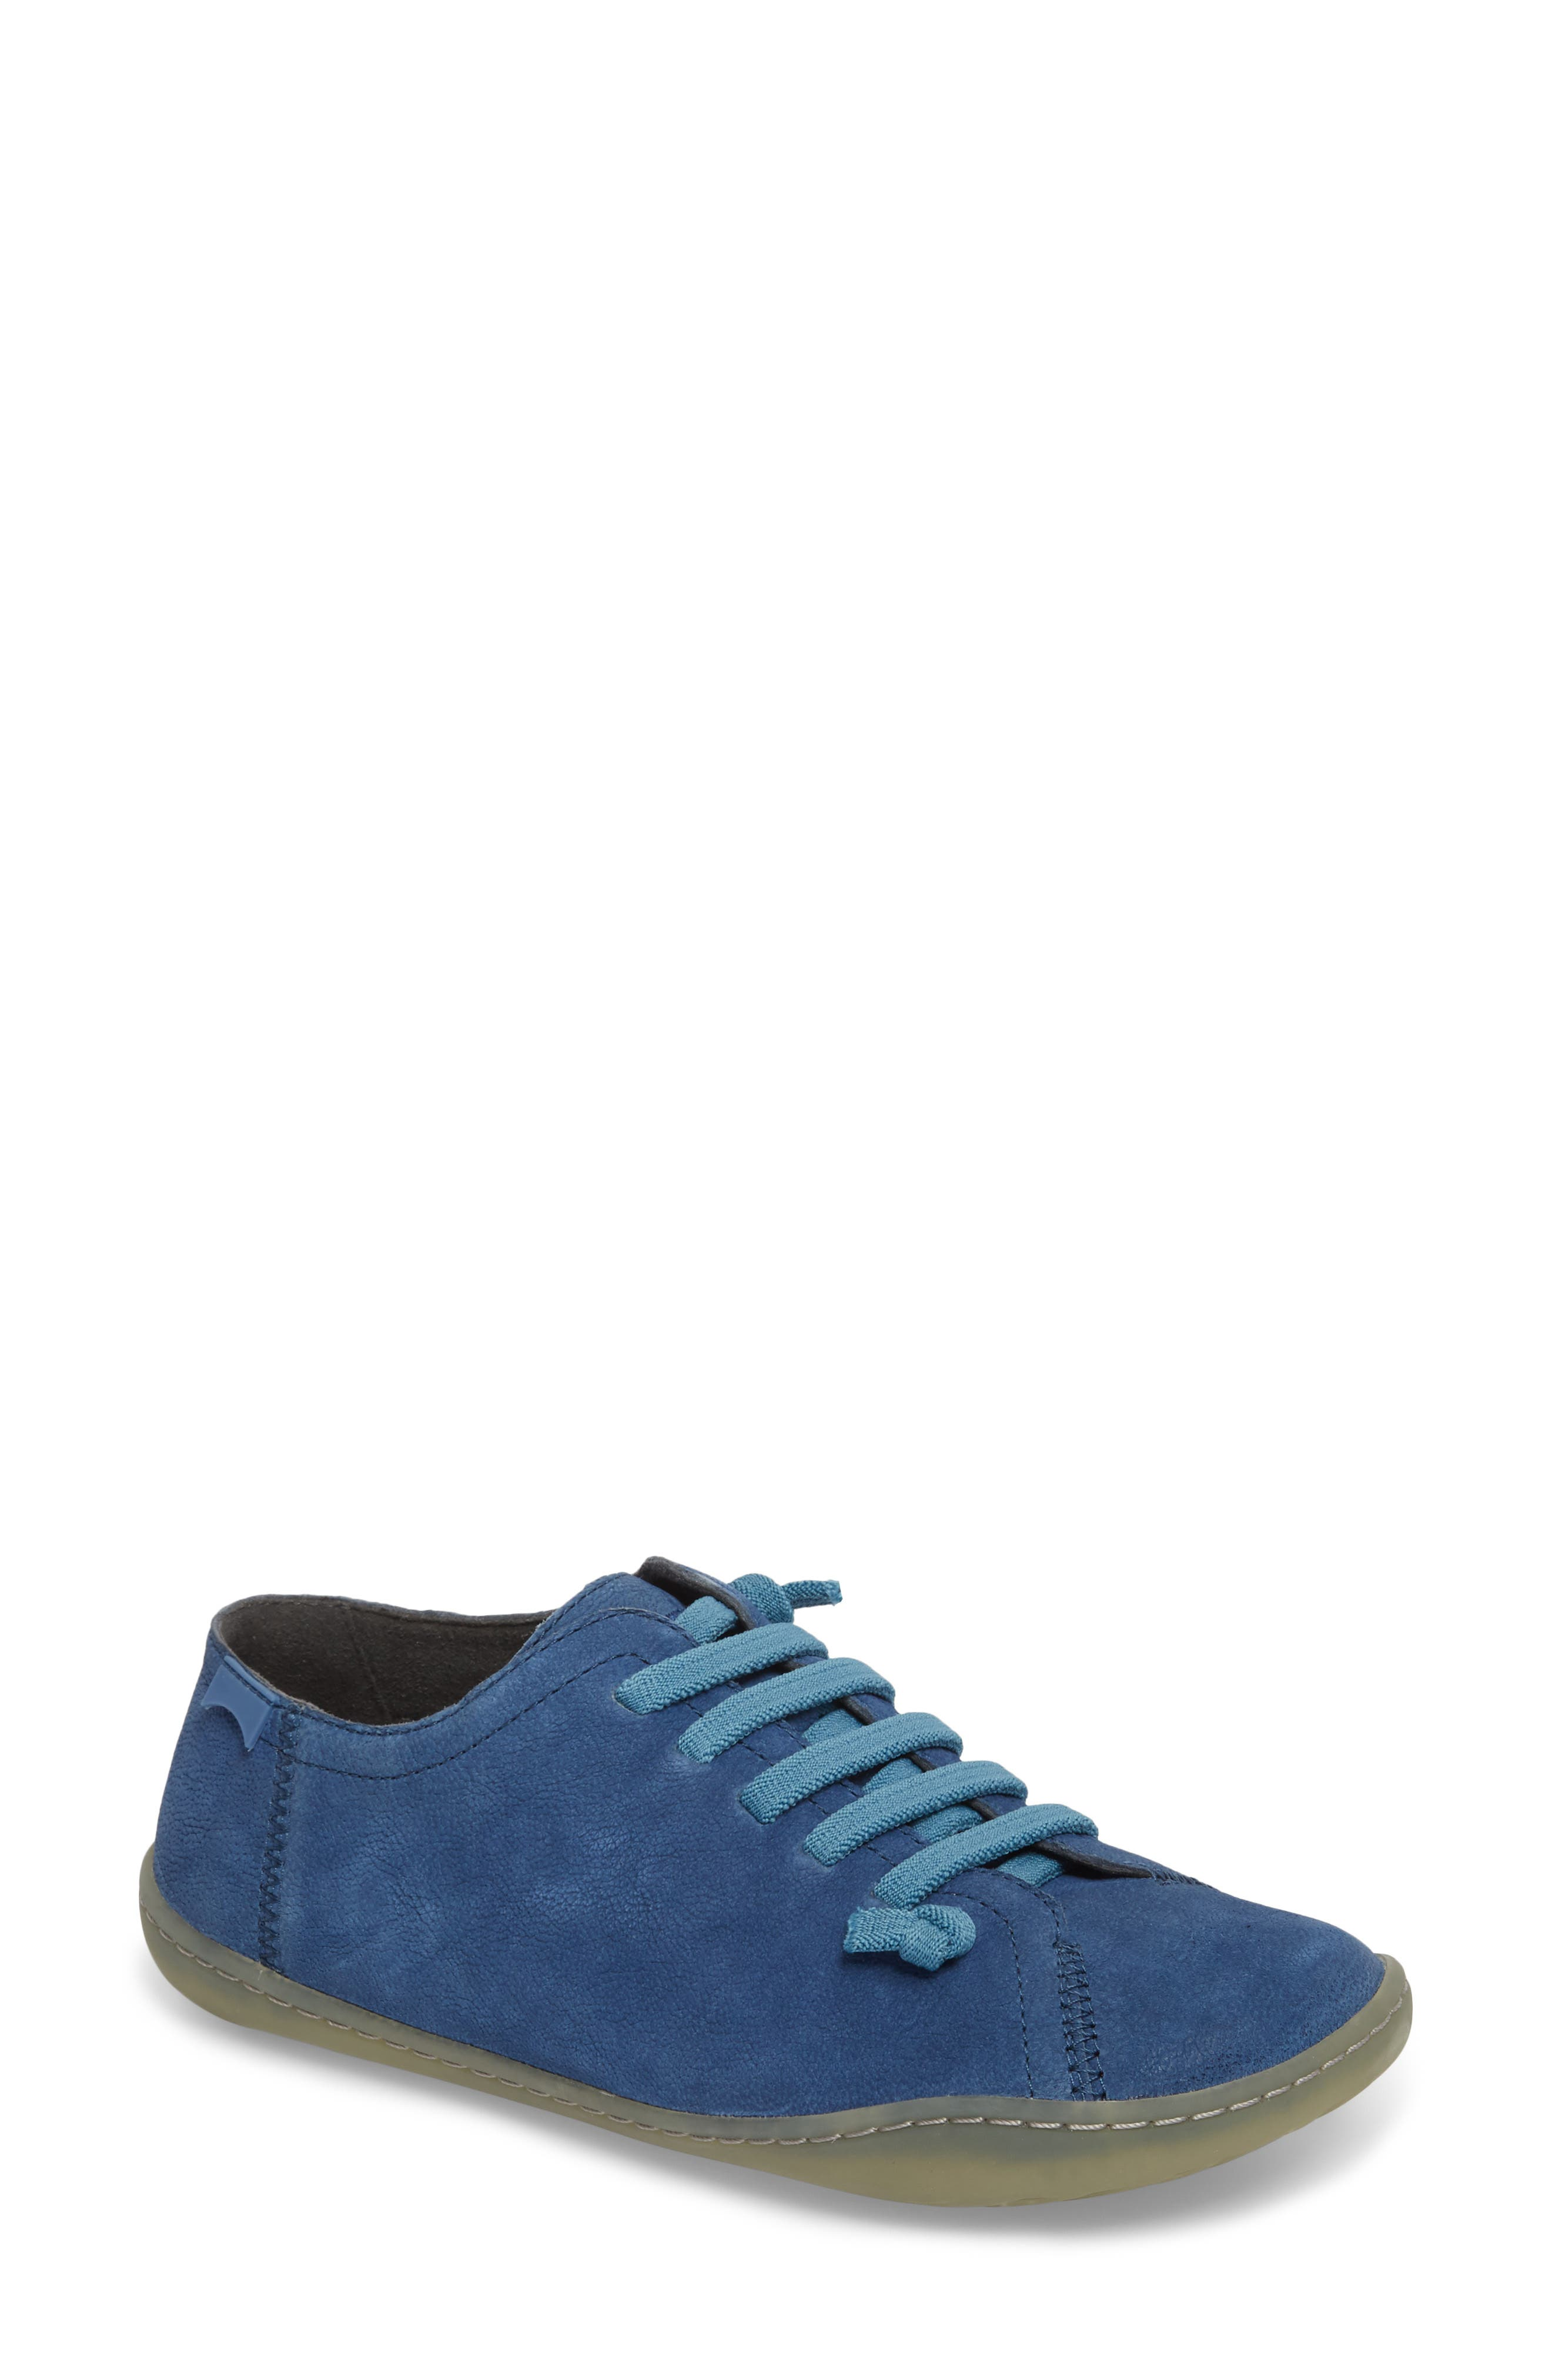 Camper 'Peu Cami' Leather Sneaker (Women)